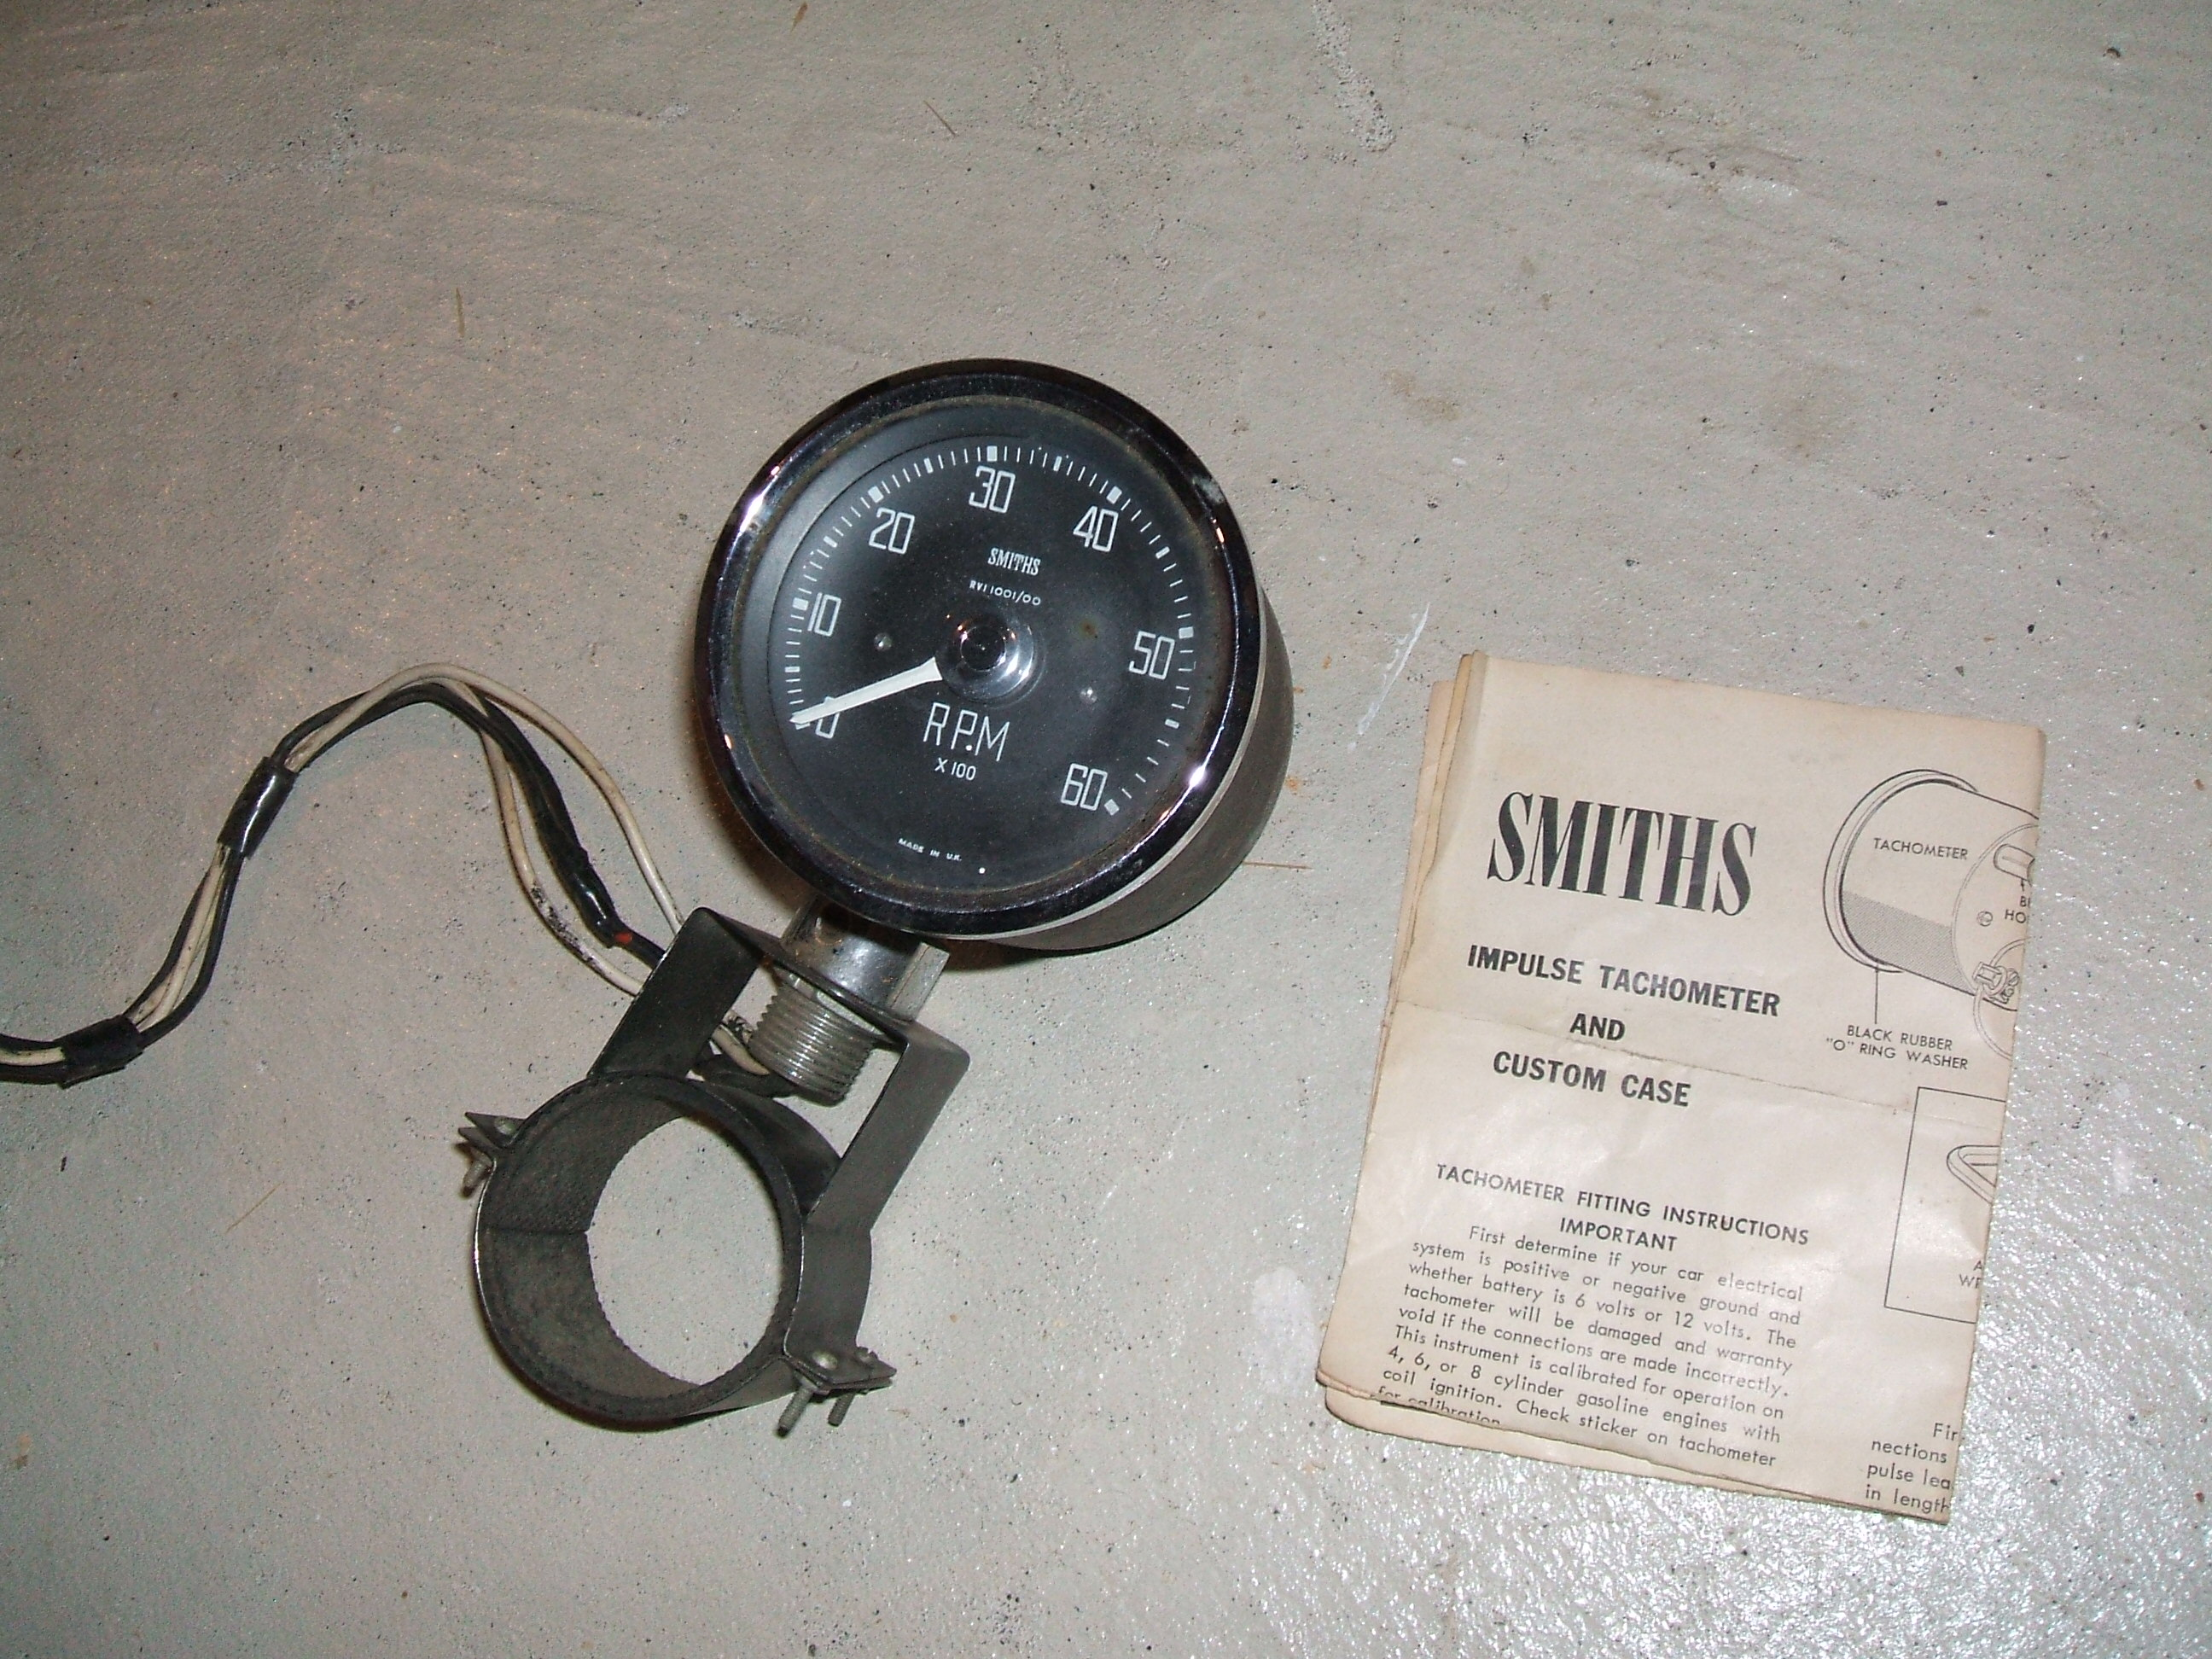 for sale vintage smiths tachometer 6 & 12 volt cars for sale mgb electronic ignition ground edited may 15, 2017 by cabnut (see edit history)